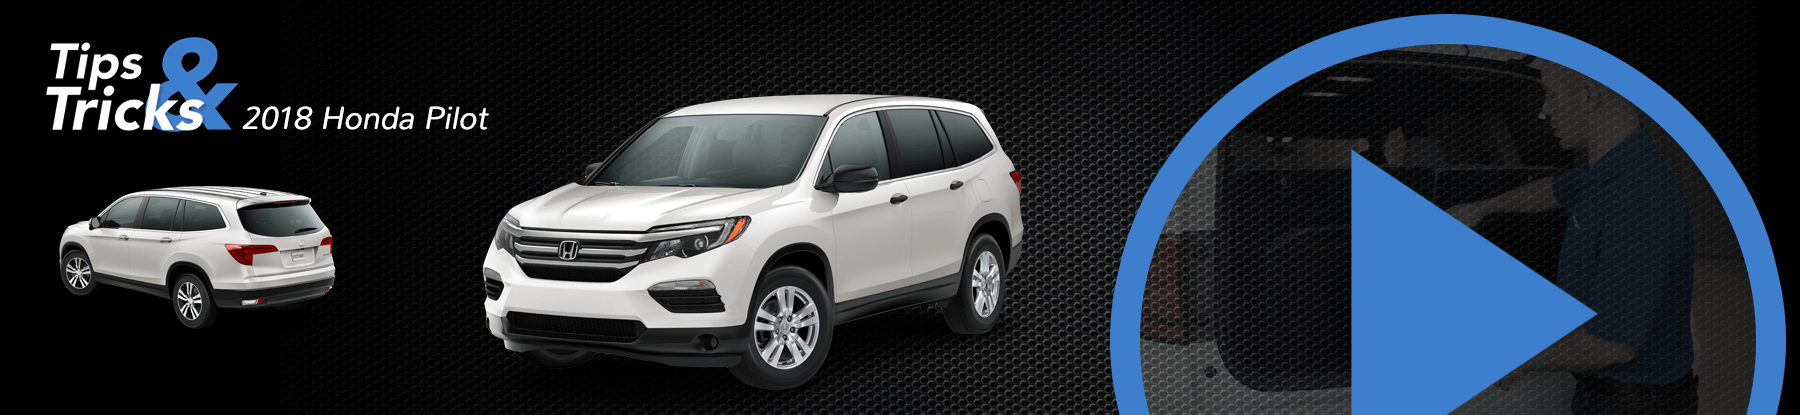 2018 Honda Pilot Tips and Tricks Banner